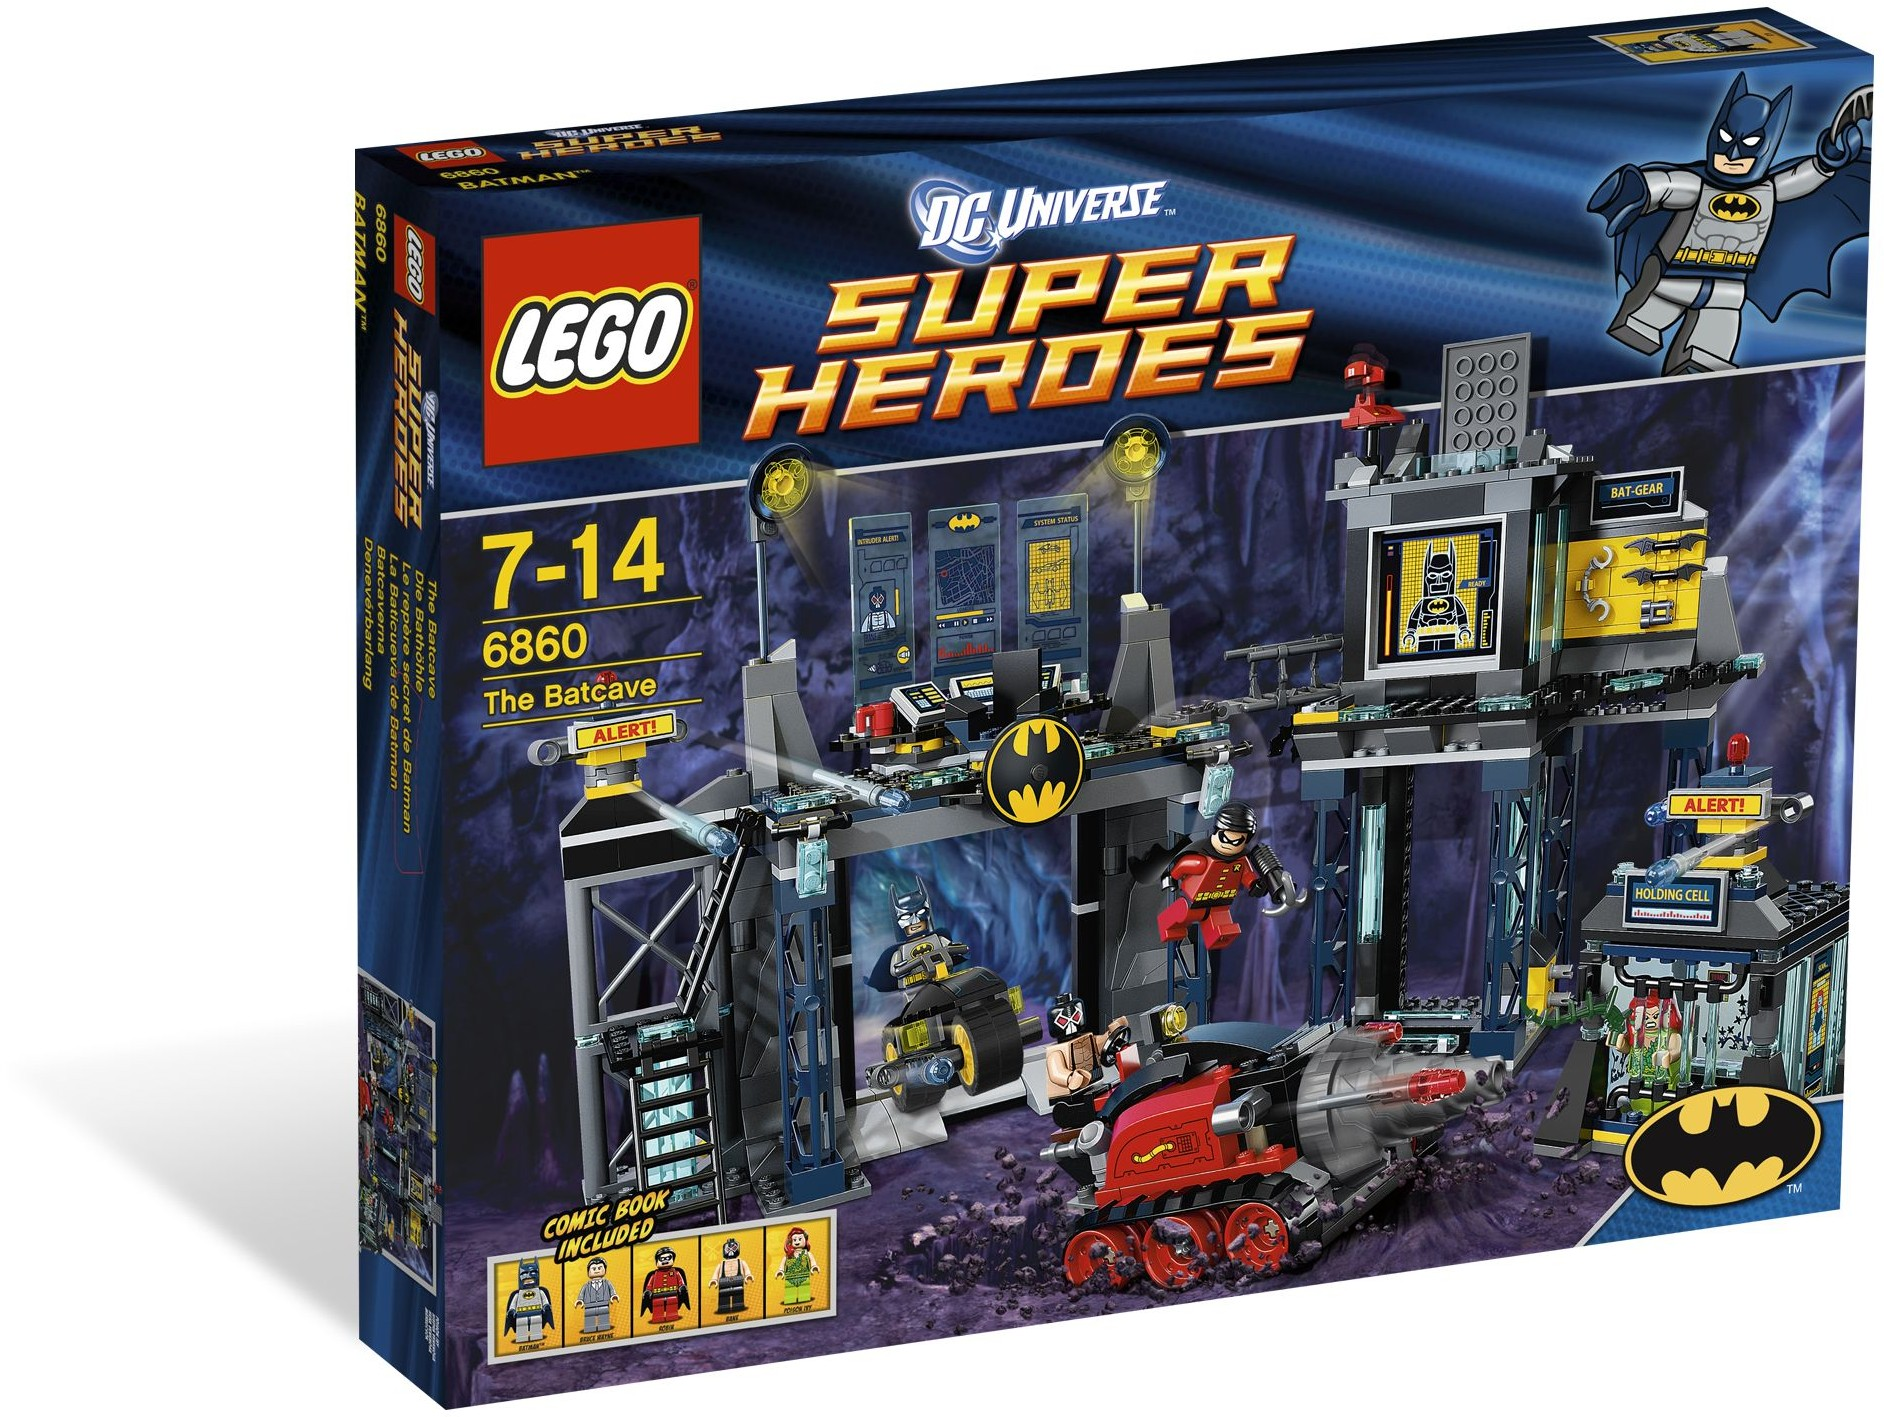 LEGO 6860 - Super Heroes - The Batcave